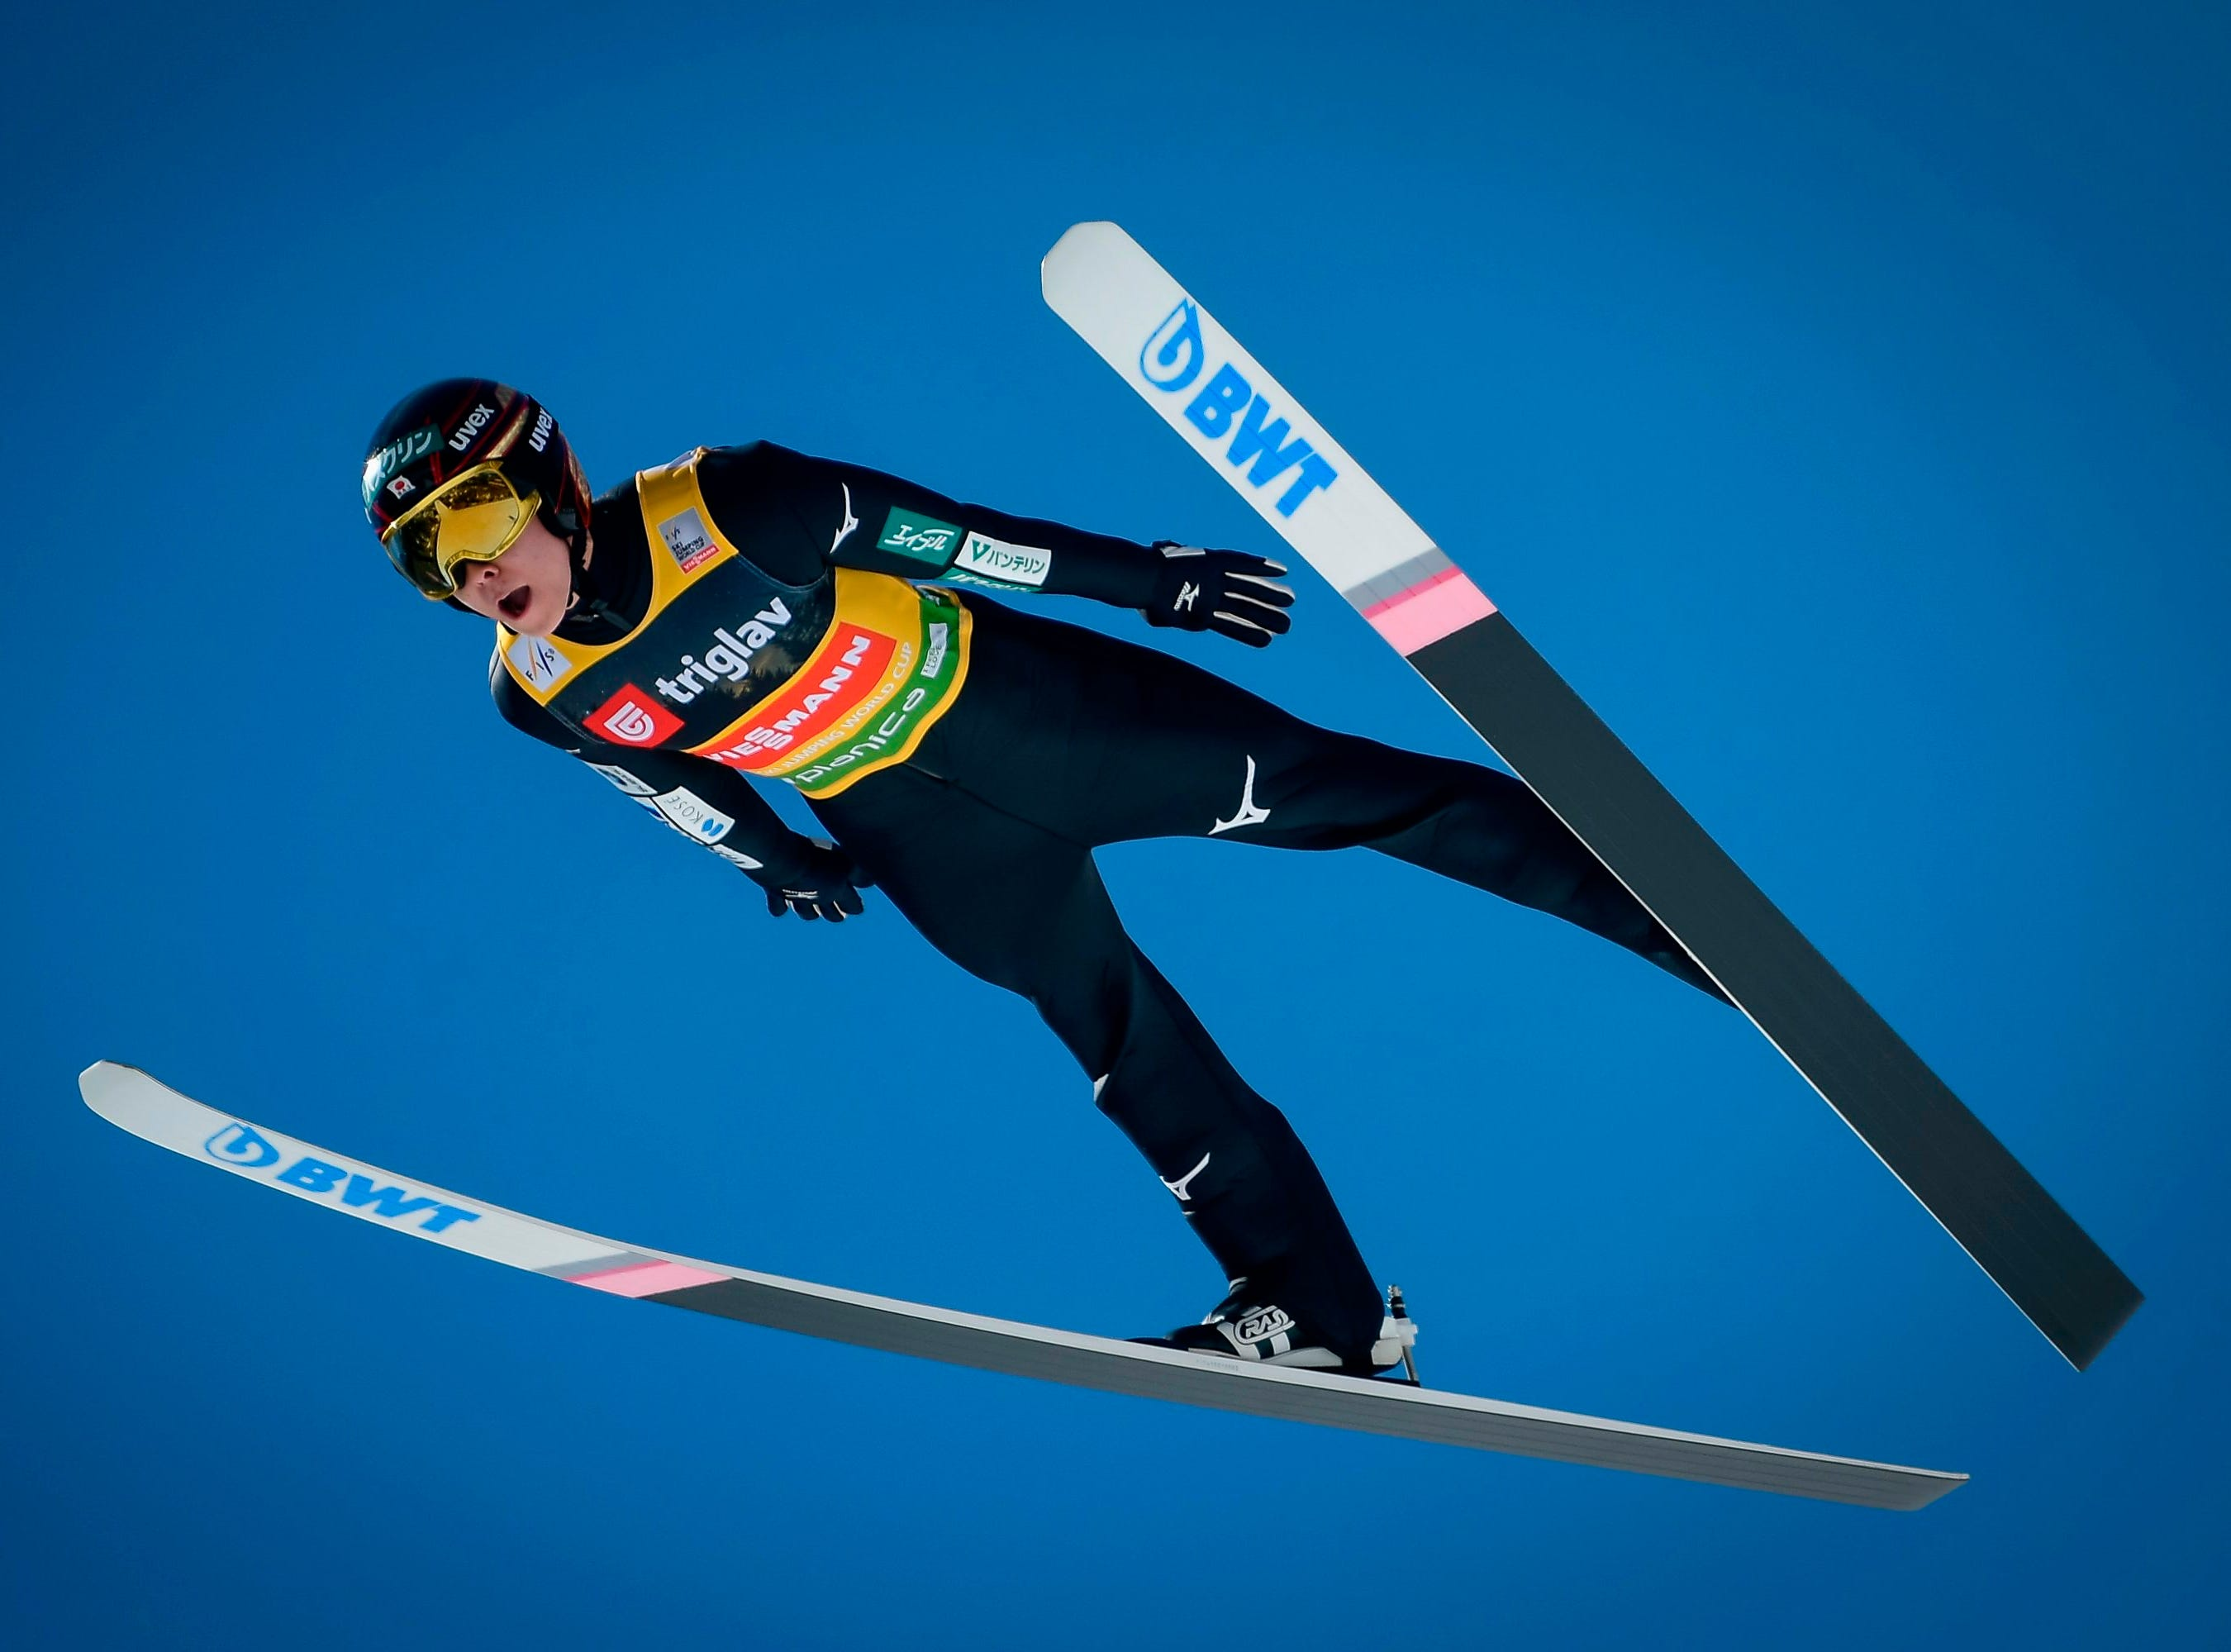 Ryoyu Kobayashi of Japan competes  during the qualifying round of the FIS Ski Jumping World Cup Men's Flying Hill Individual competition in Planica, Slovenia, on March 21, 2019.